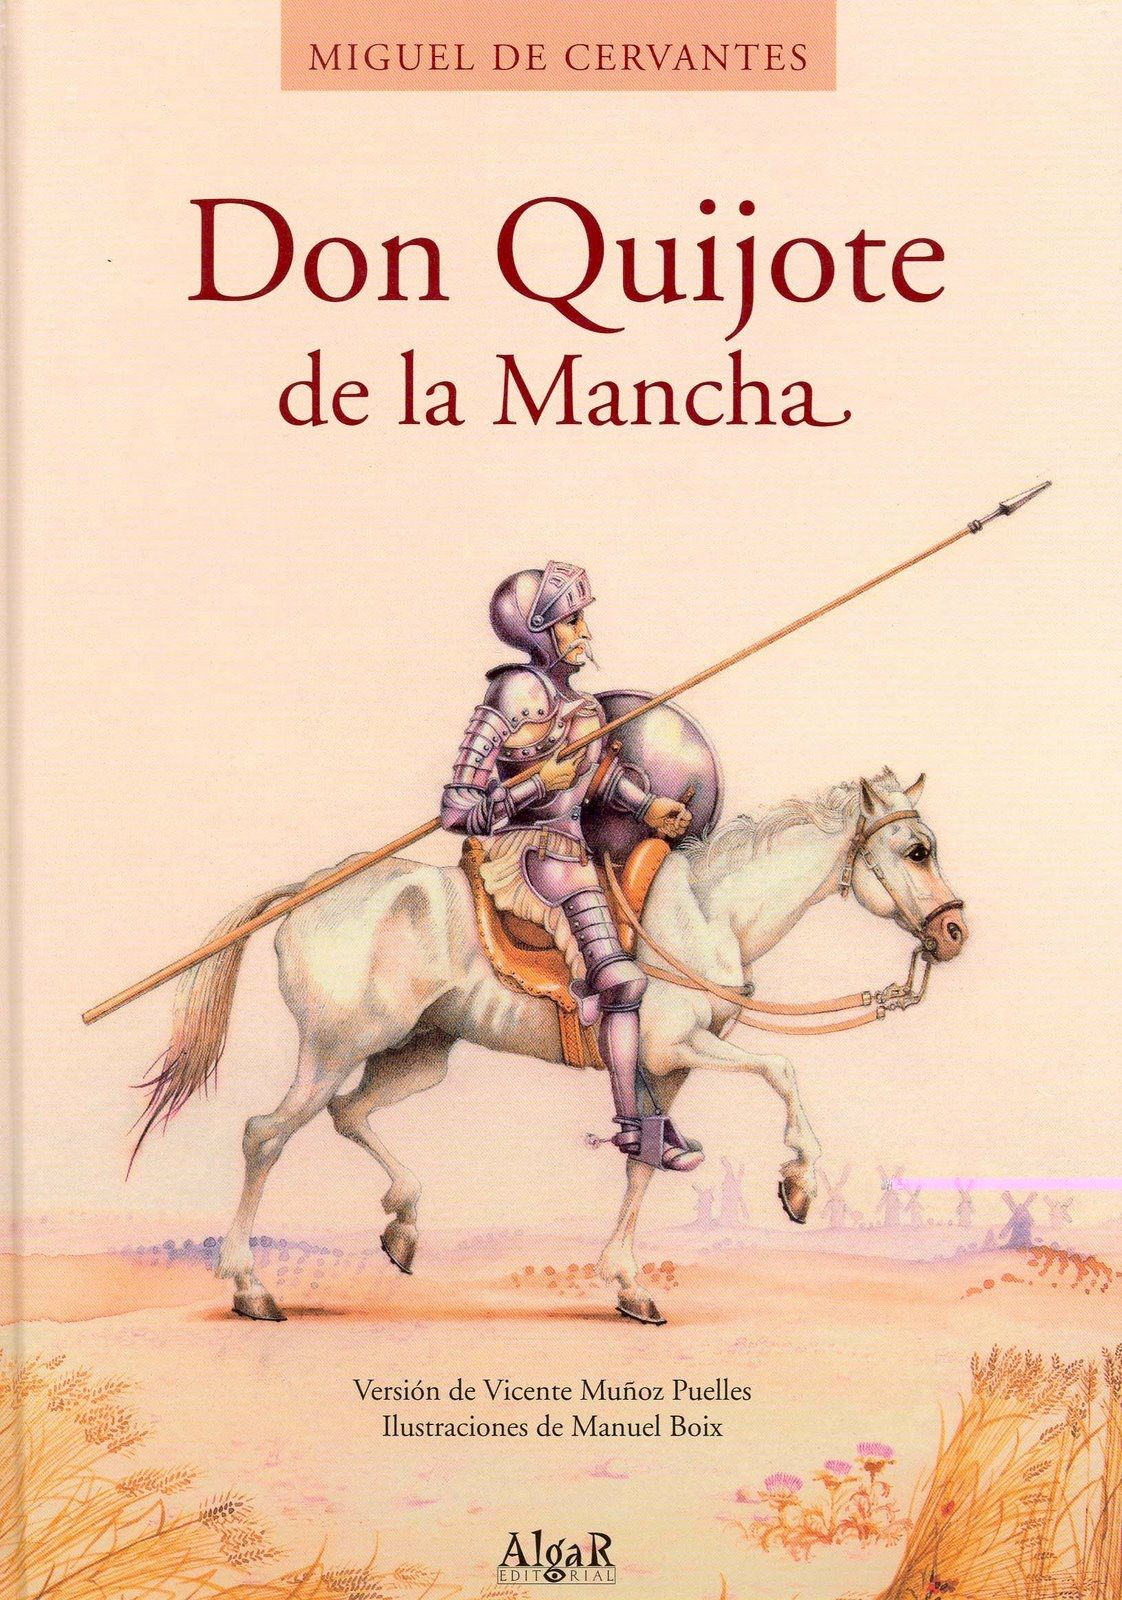 an analysis of the theme in the book don quixote by miguel de cervantes Johns hopkins' william egginton recently authored a book about  this episode  in spanish author miguel de cervantes' don quixote, first  it wrong becomes  the fundamental common theme of everything that he writes  from quixote to  illustrate a point or things that you're analyzing and discussing.